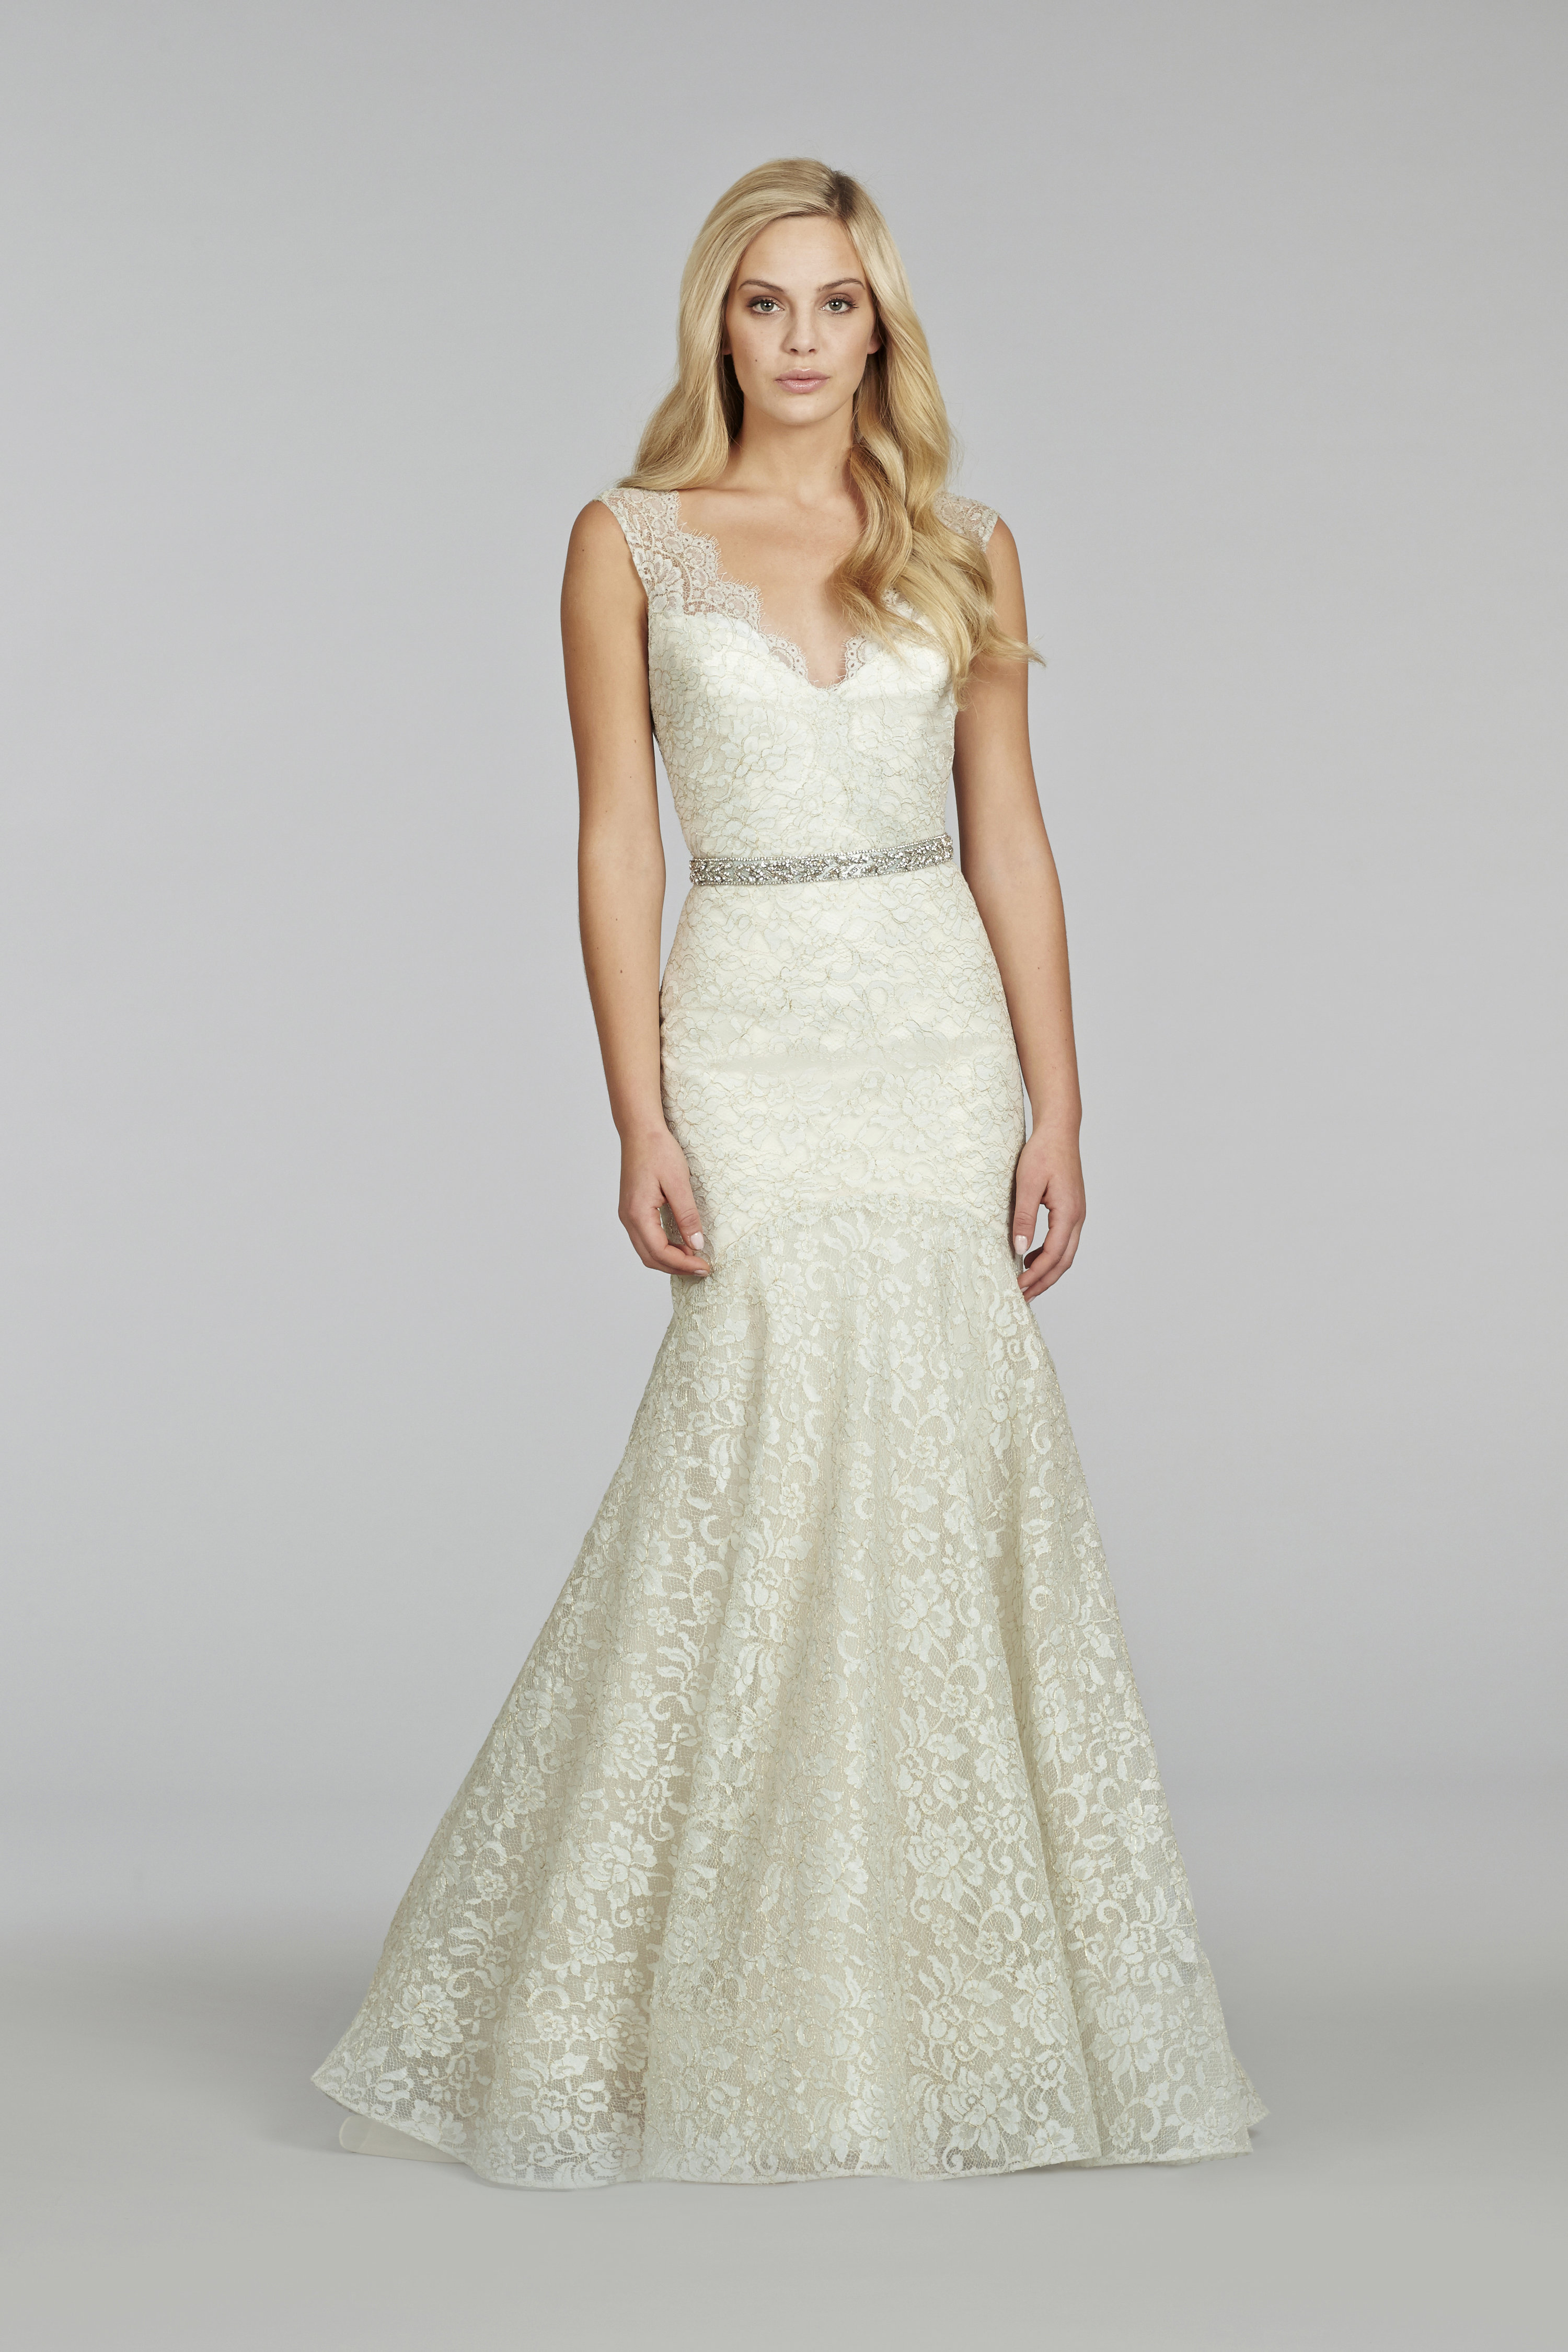 Bridal Gowns and Wedding Dresses by JLM Couture - Style 8402